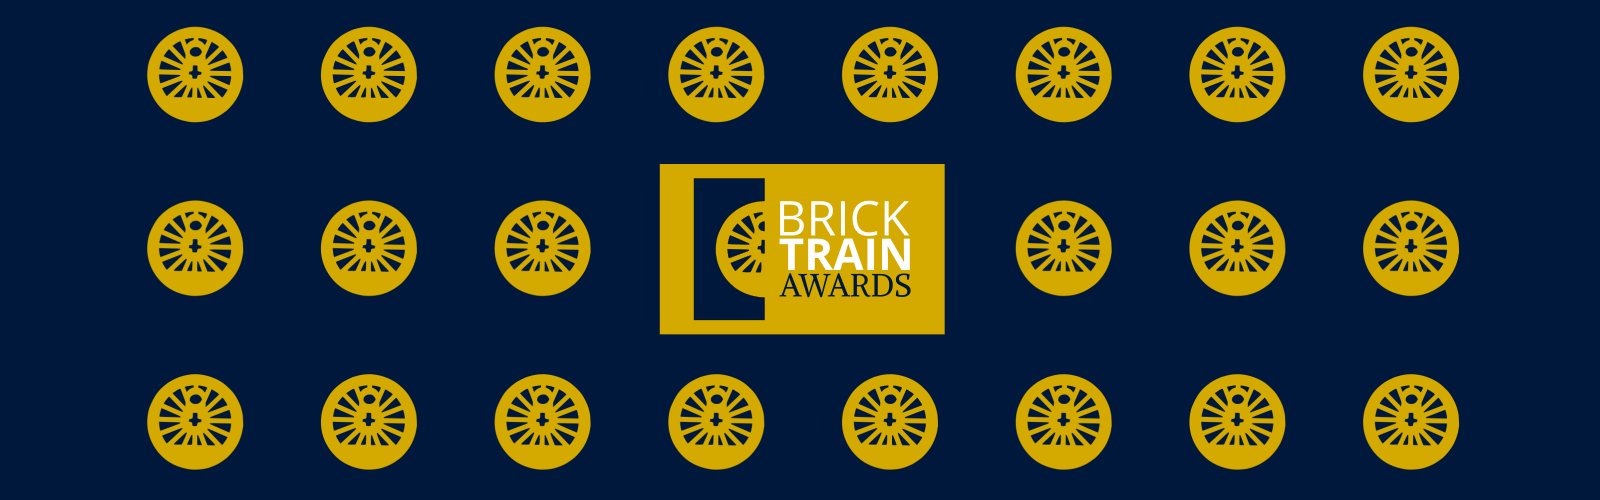 Brick Train Awards - awards for LEGO train builders